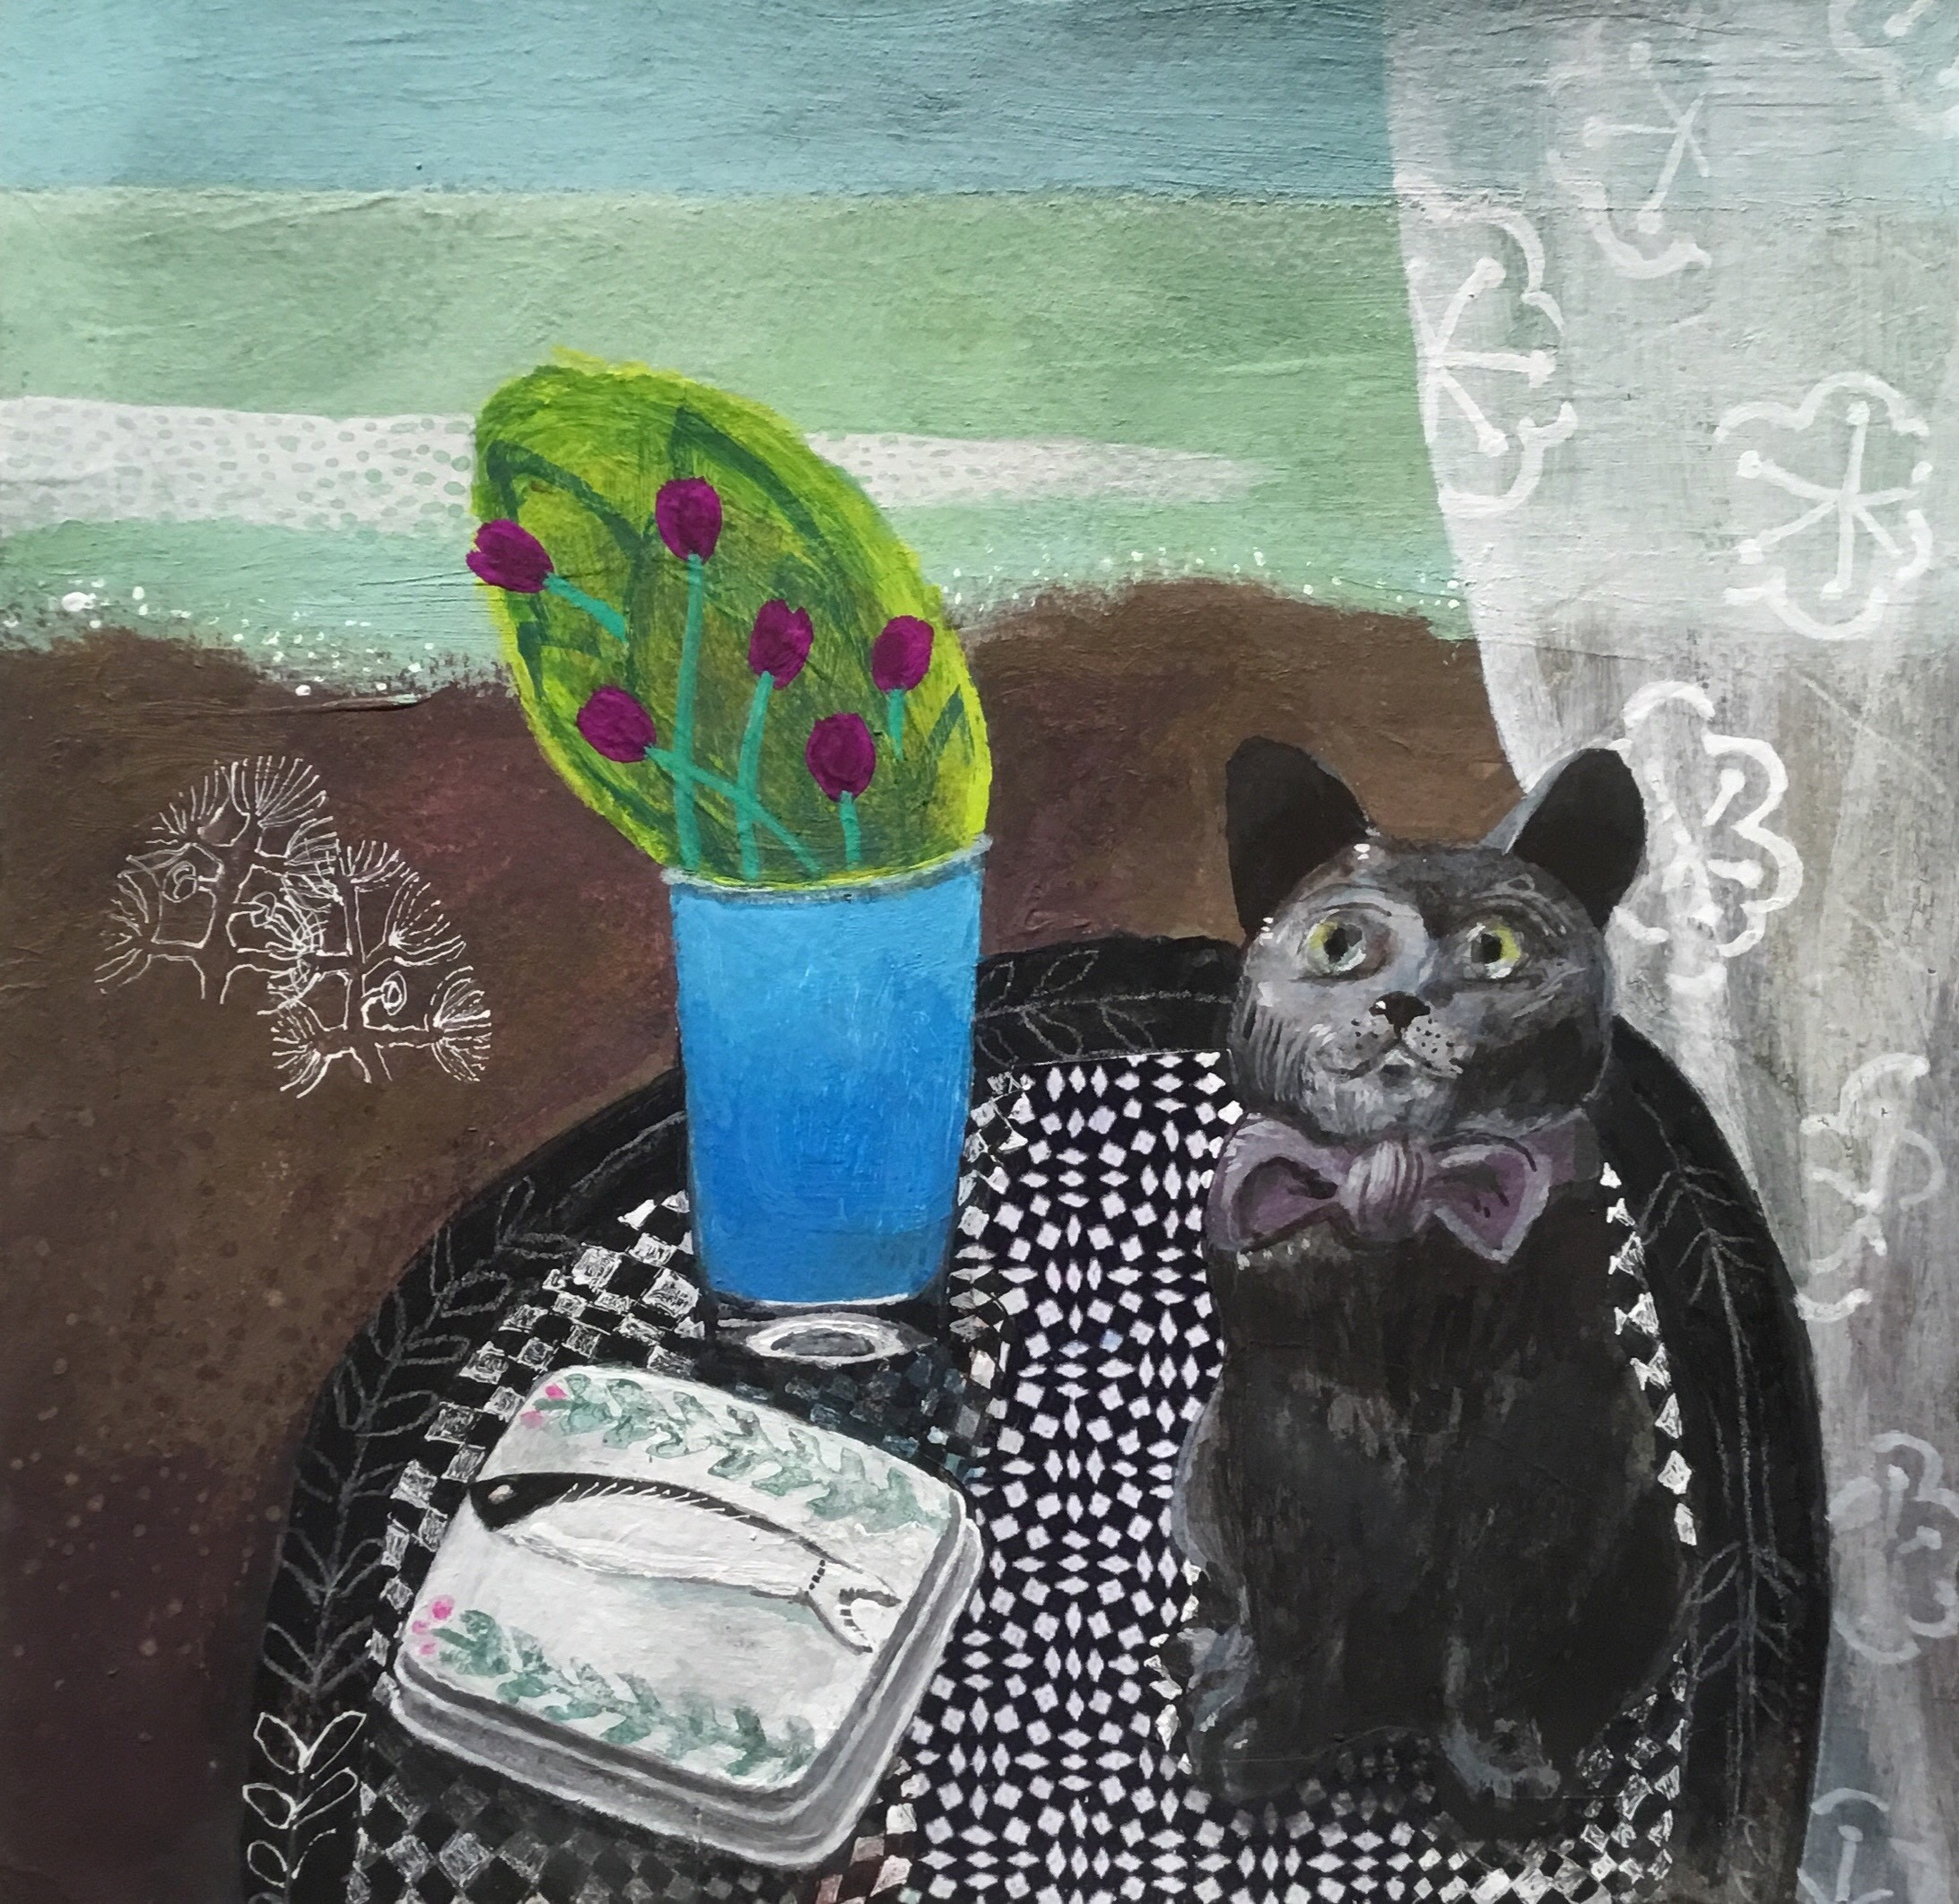 """<span class=""""link fancybox-details-link""""><a href=""""/artists/146-gertie-young/works/10824-gertie-young-ebay-cat-with-sardine-box/"""">View Detail Page</a></span><div class=""""artist""""><span class=""""artist""""><strong>Gertie Young</strong></span></div><div class=""""title""""><em>eBay Cat with Sardine Box</em></div><div class=""""medium"""">watercolour, gouache, collage & pencil</div><div class=""""dimensions"""">25x25cm</div><div class=""""price"""">£250.00</div>"""